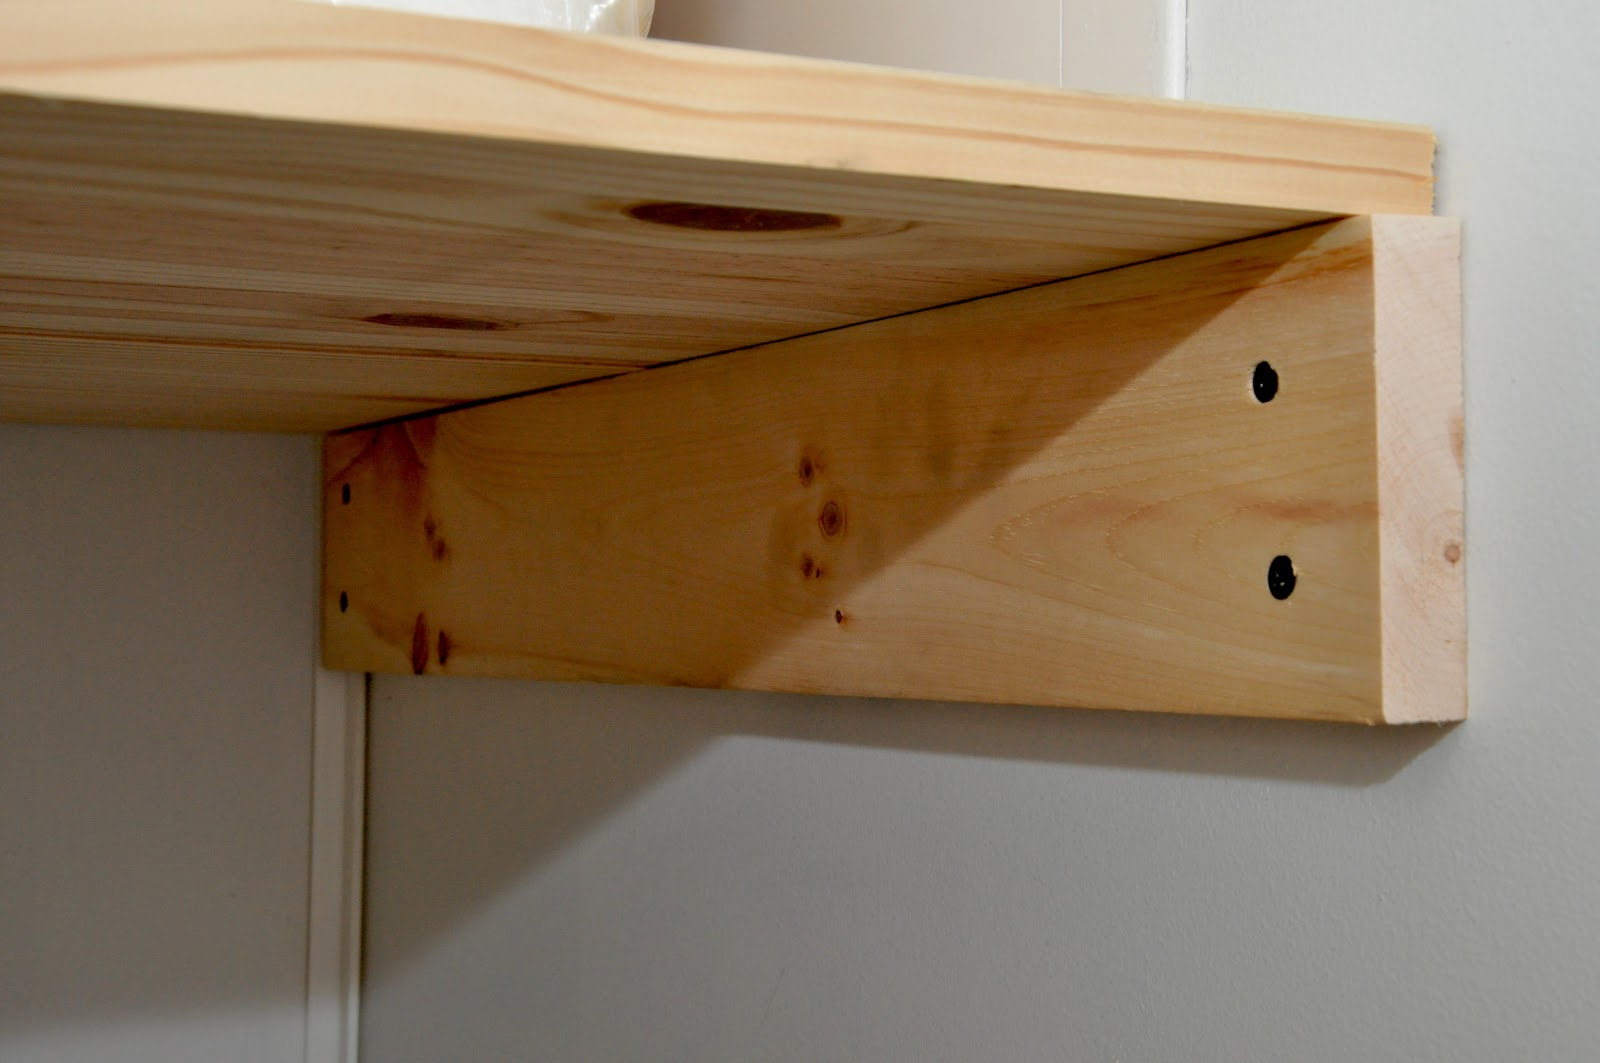 Marvelous photograph of Wood Bathroom Shelves Installing a bathroom shelf with #462814 color and 1600x1063 pixels